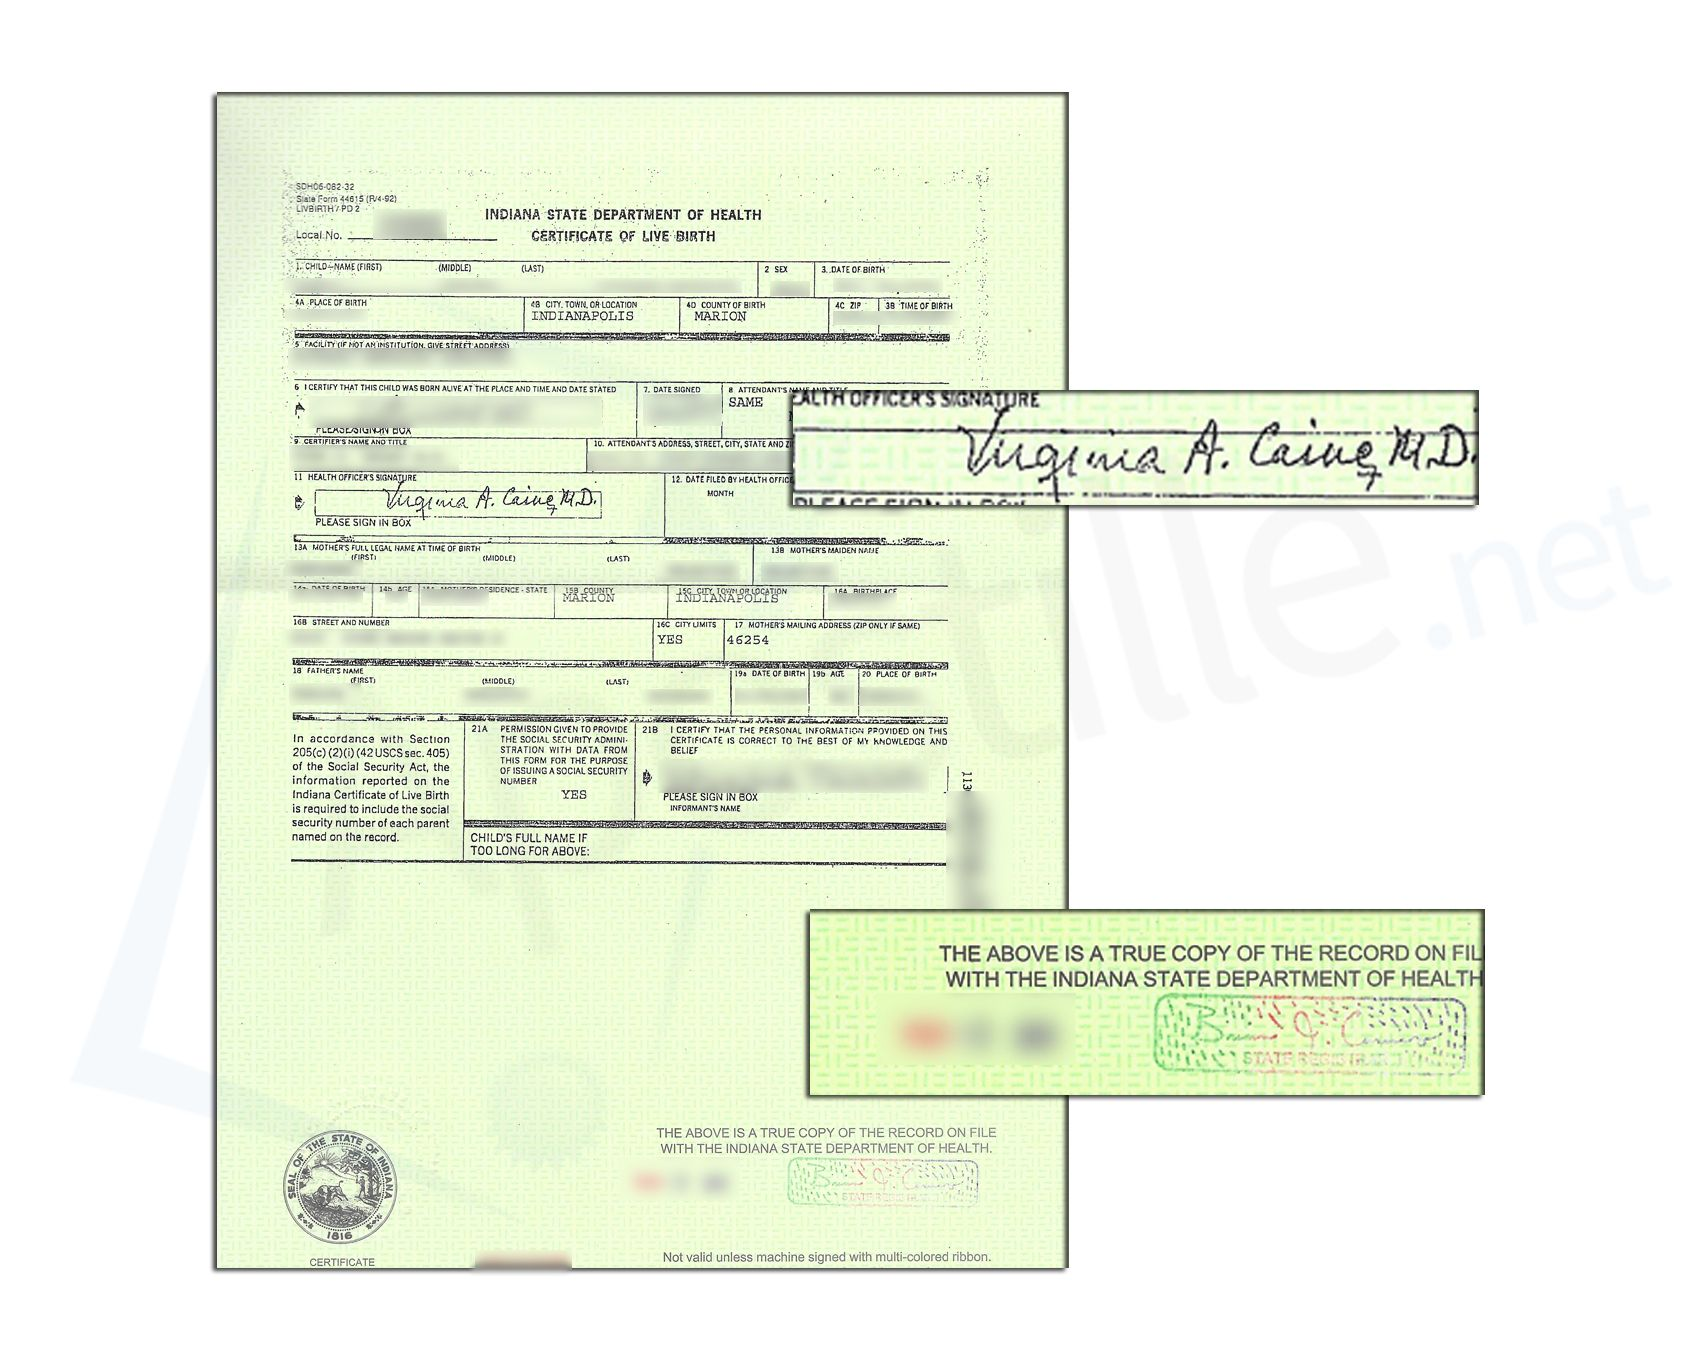 State Of Indiana Marion County Birth Certificate Signed By Virginia